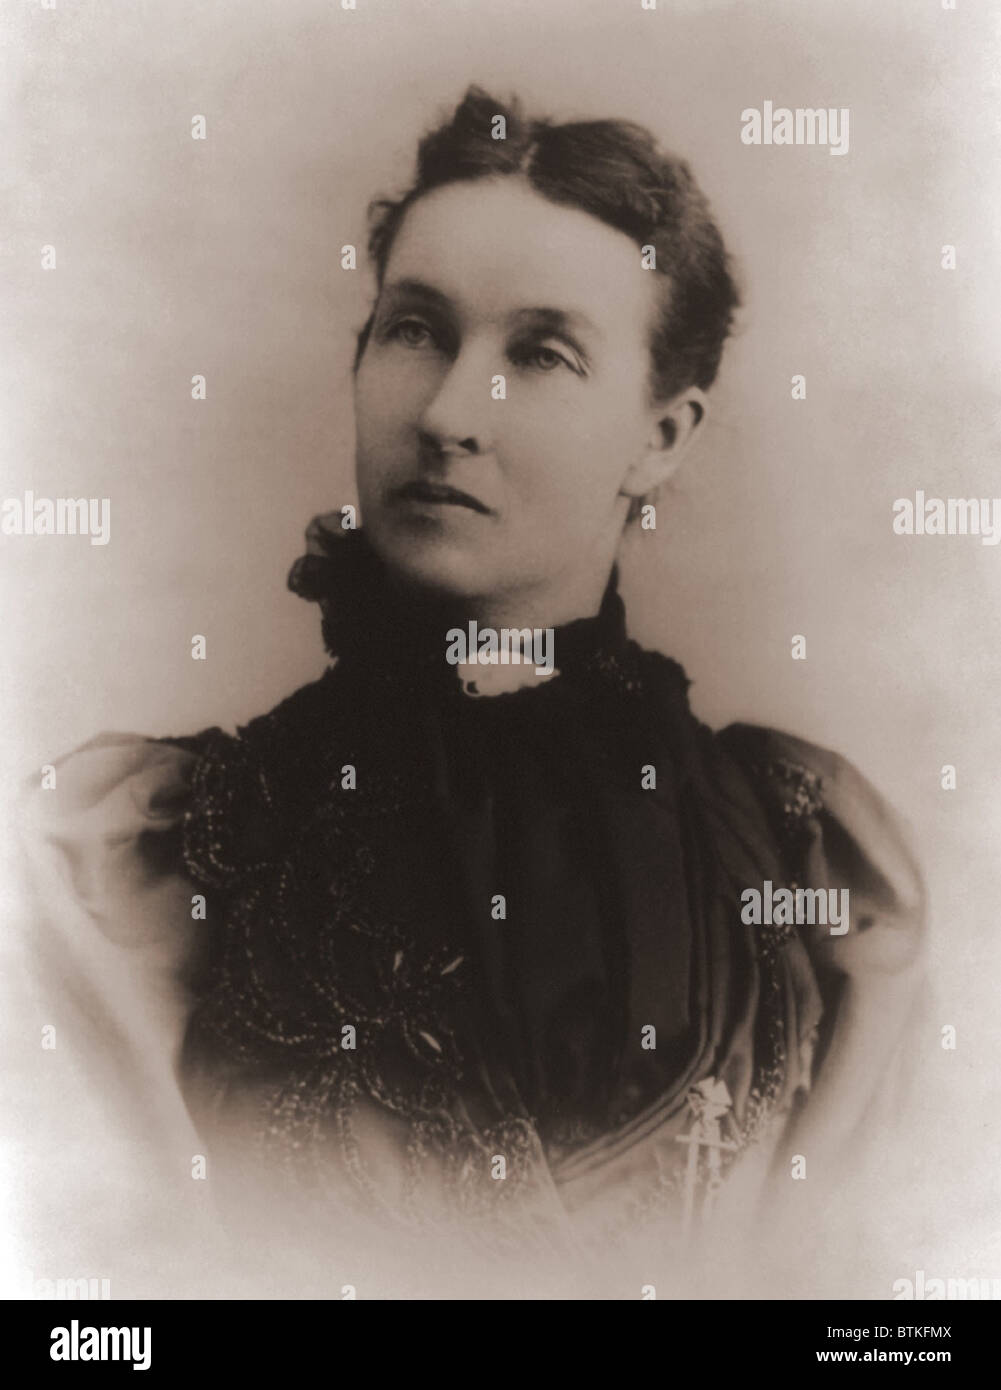 Mary Elizabeth Lease (1853-1933), American populist who campaigned against Wall Street, big business, banks, and - Stock Image